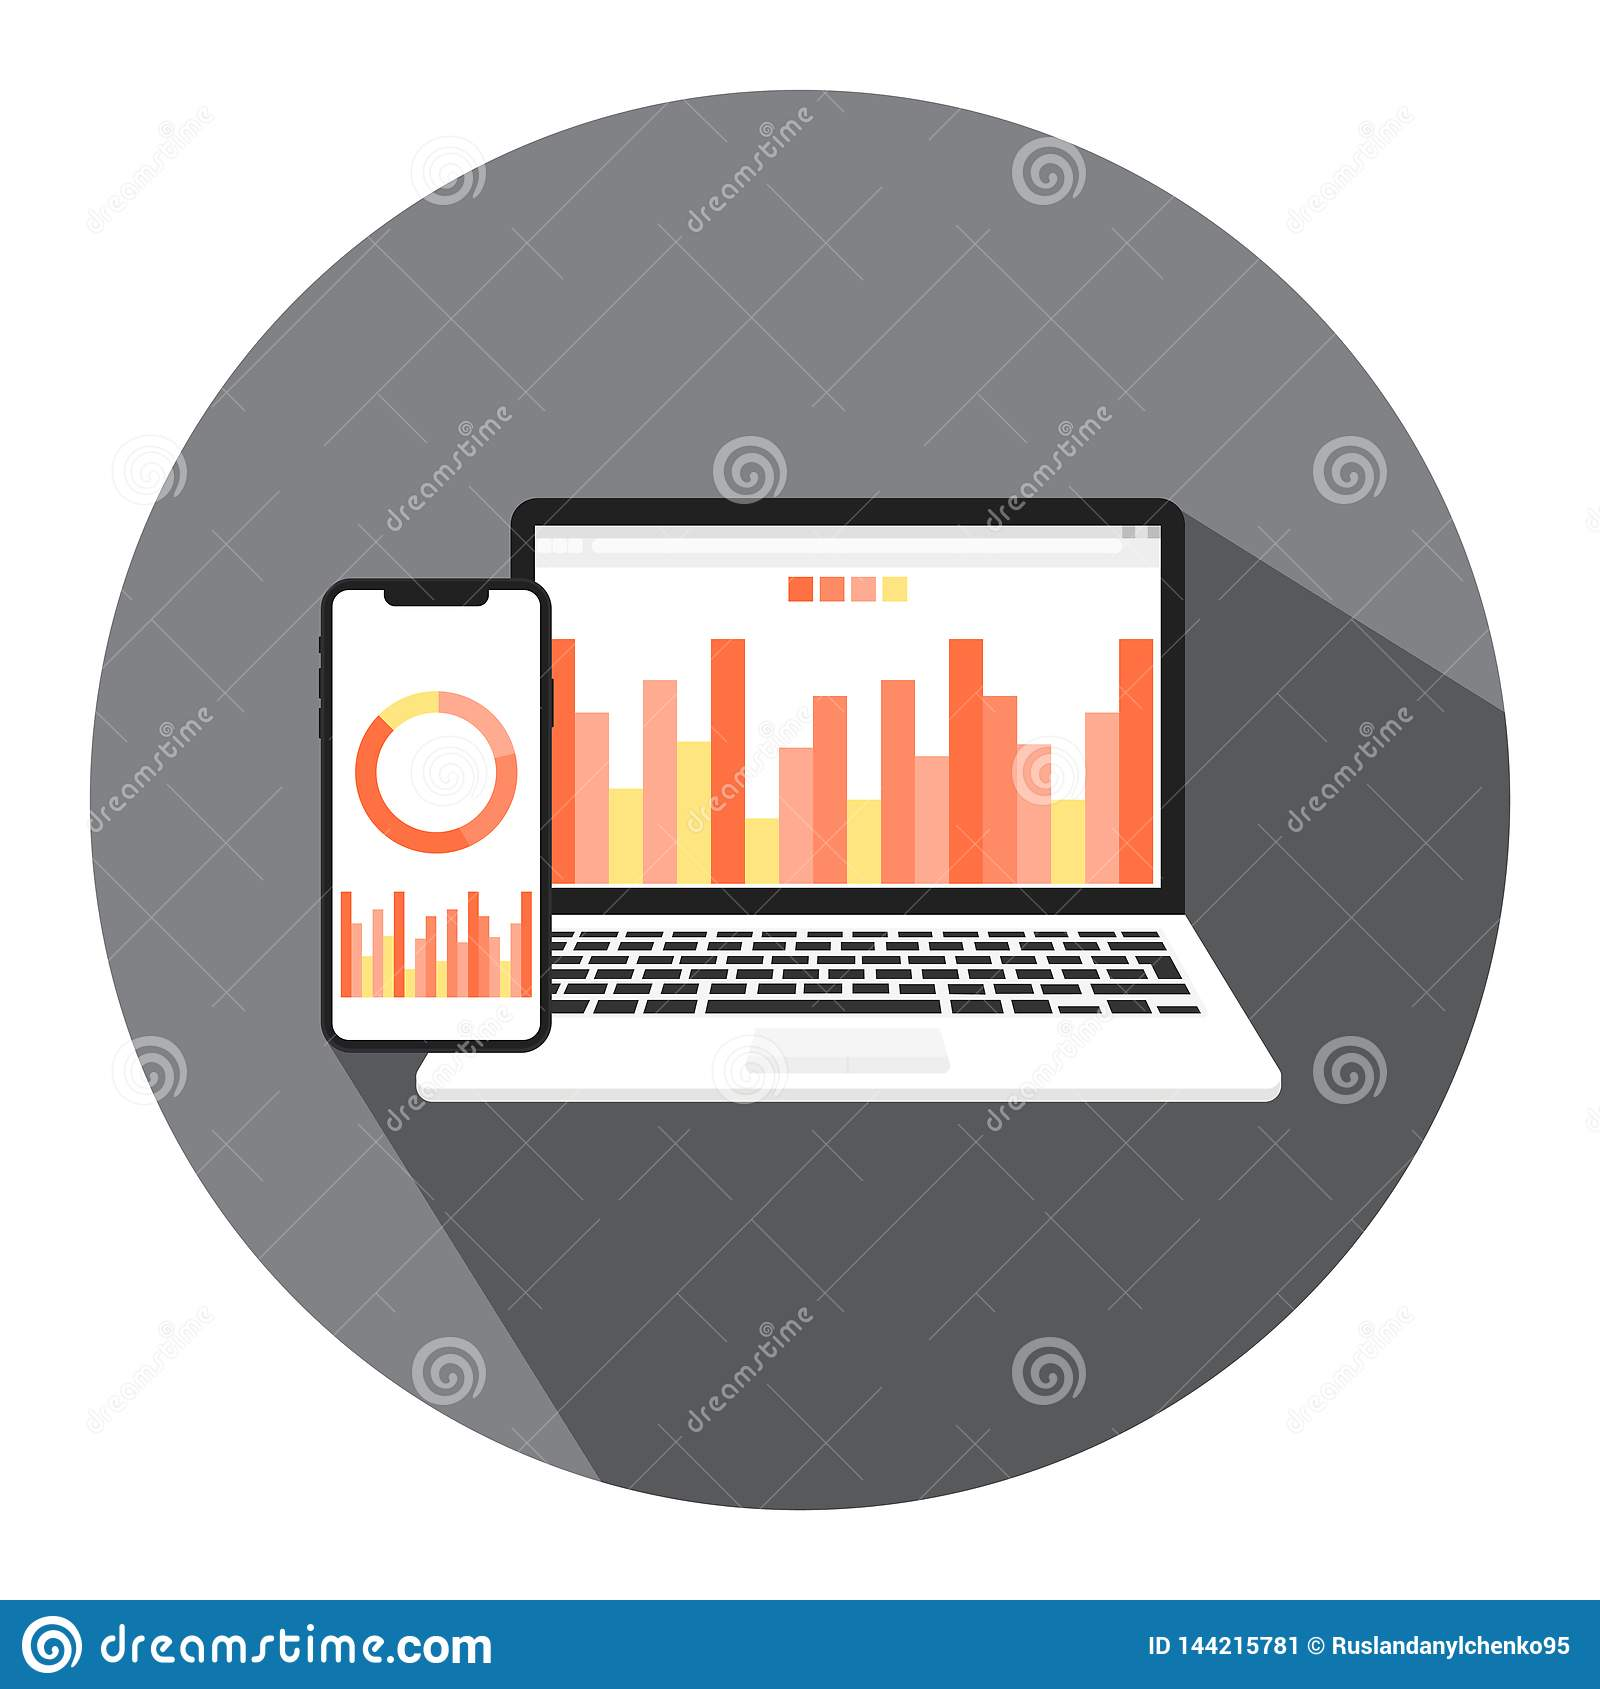 Vector illustrations of online business, financial business and money report with the concept of online management of financial